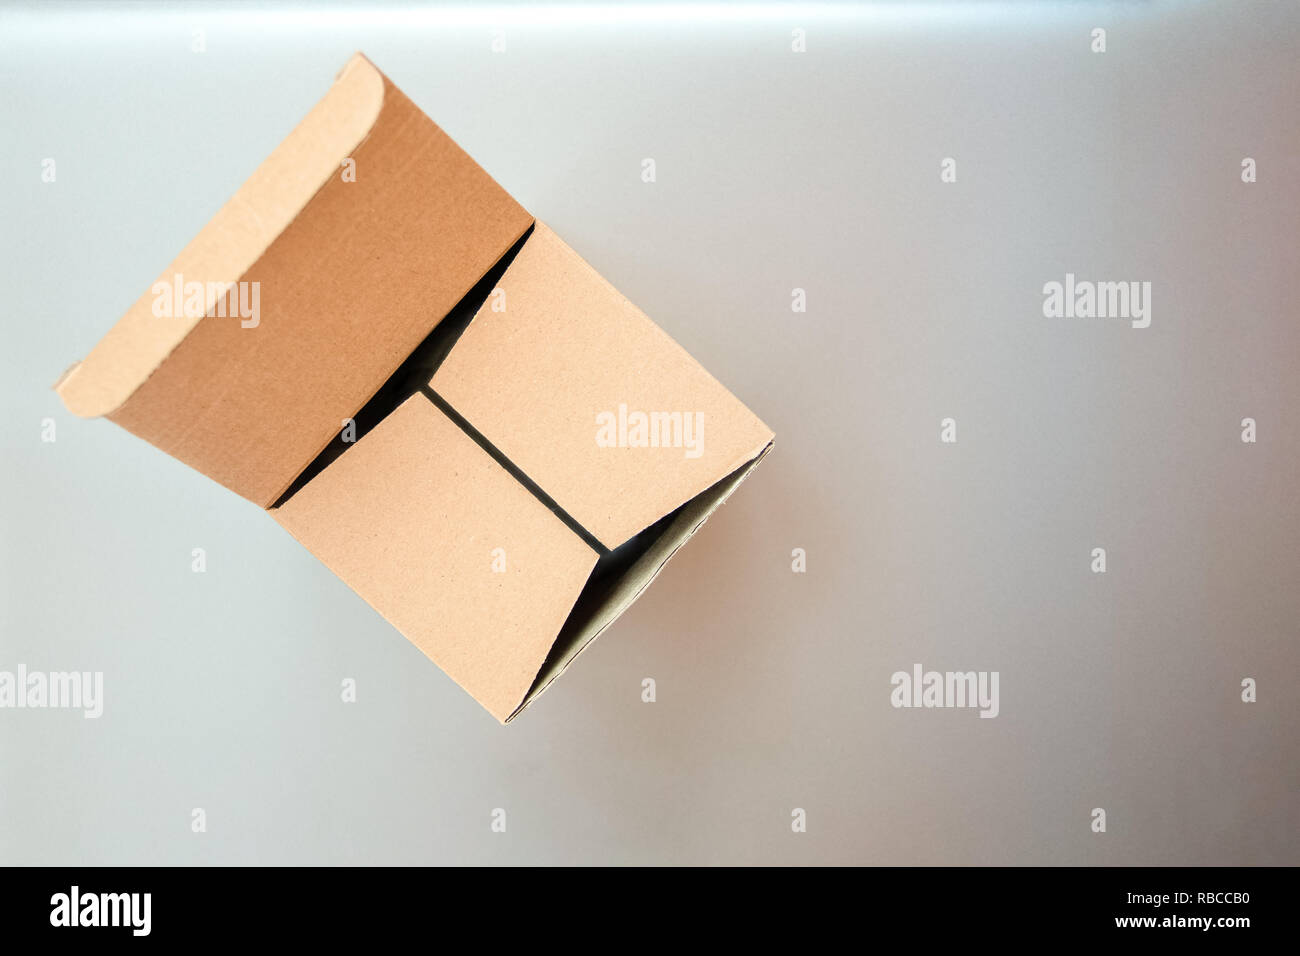 Half closed, half opened big square cardboard craft gift box on the silver gray metal background - Stock Image